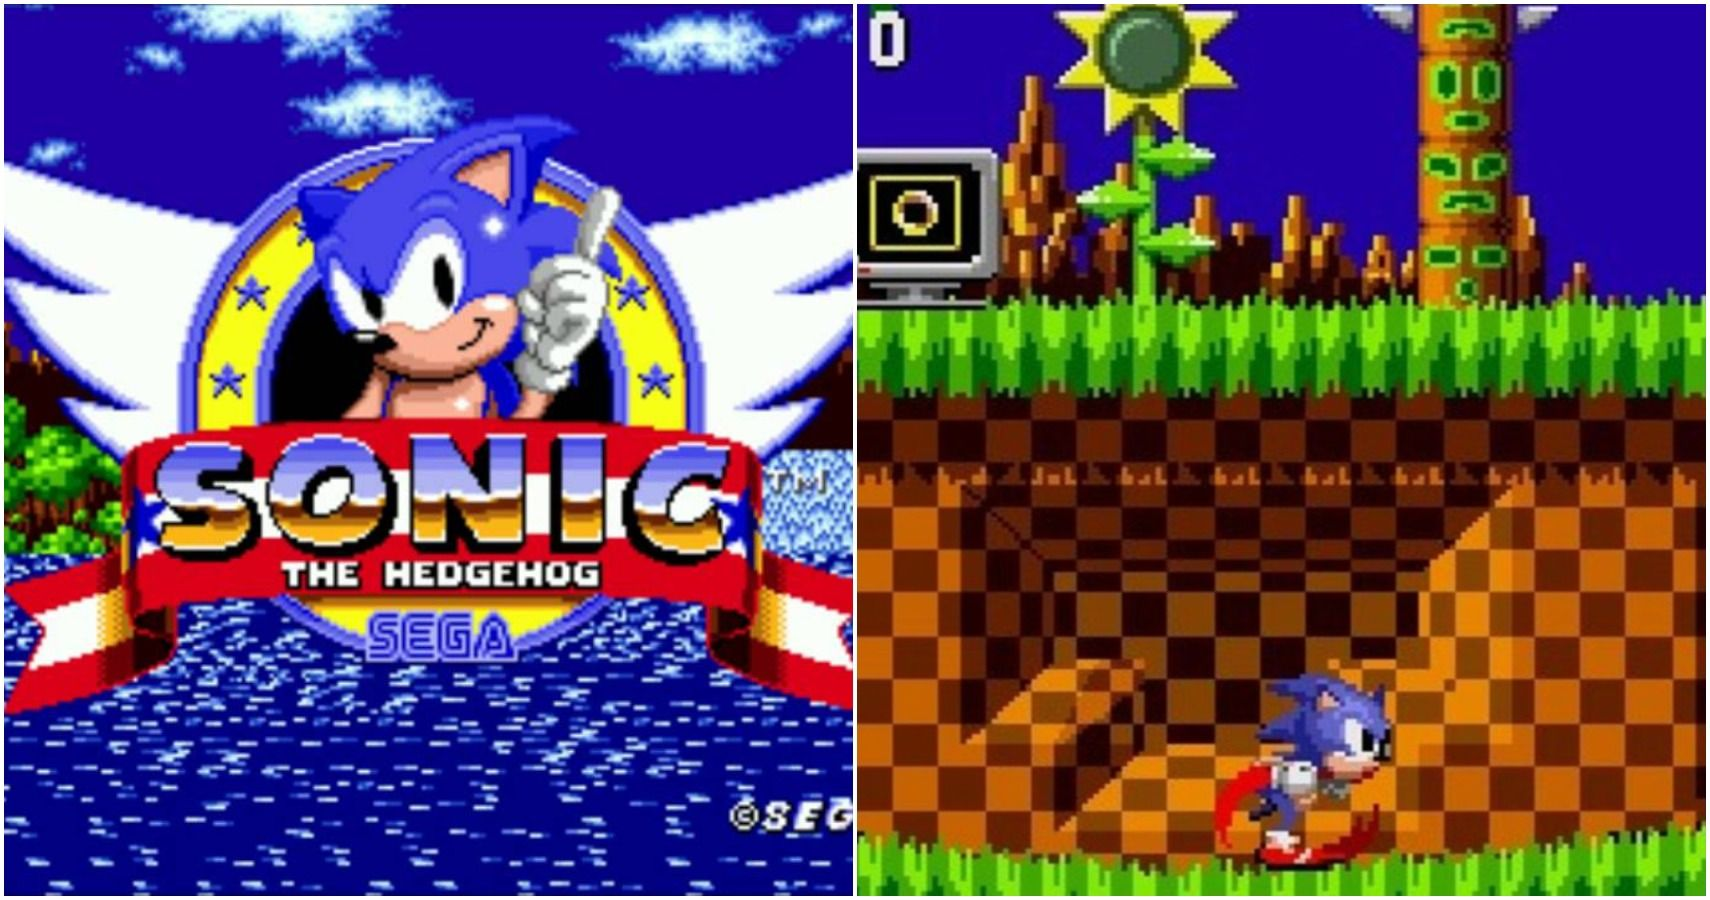 Sonic The Hedgehog Every Game On The Sega Genesis Ranked